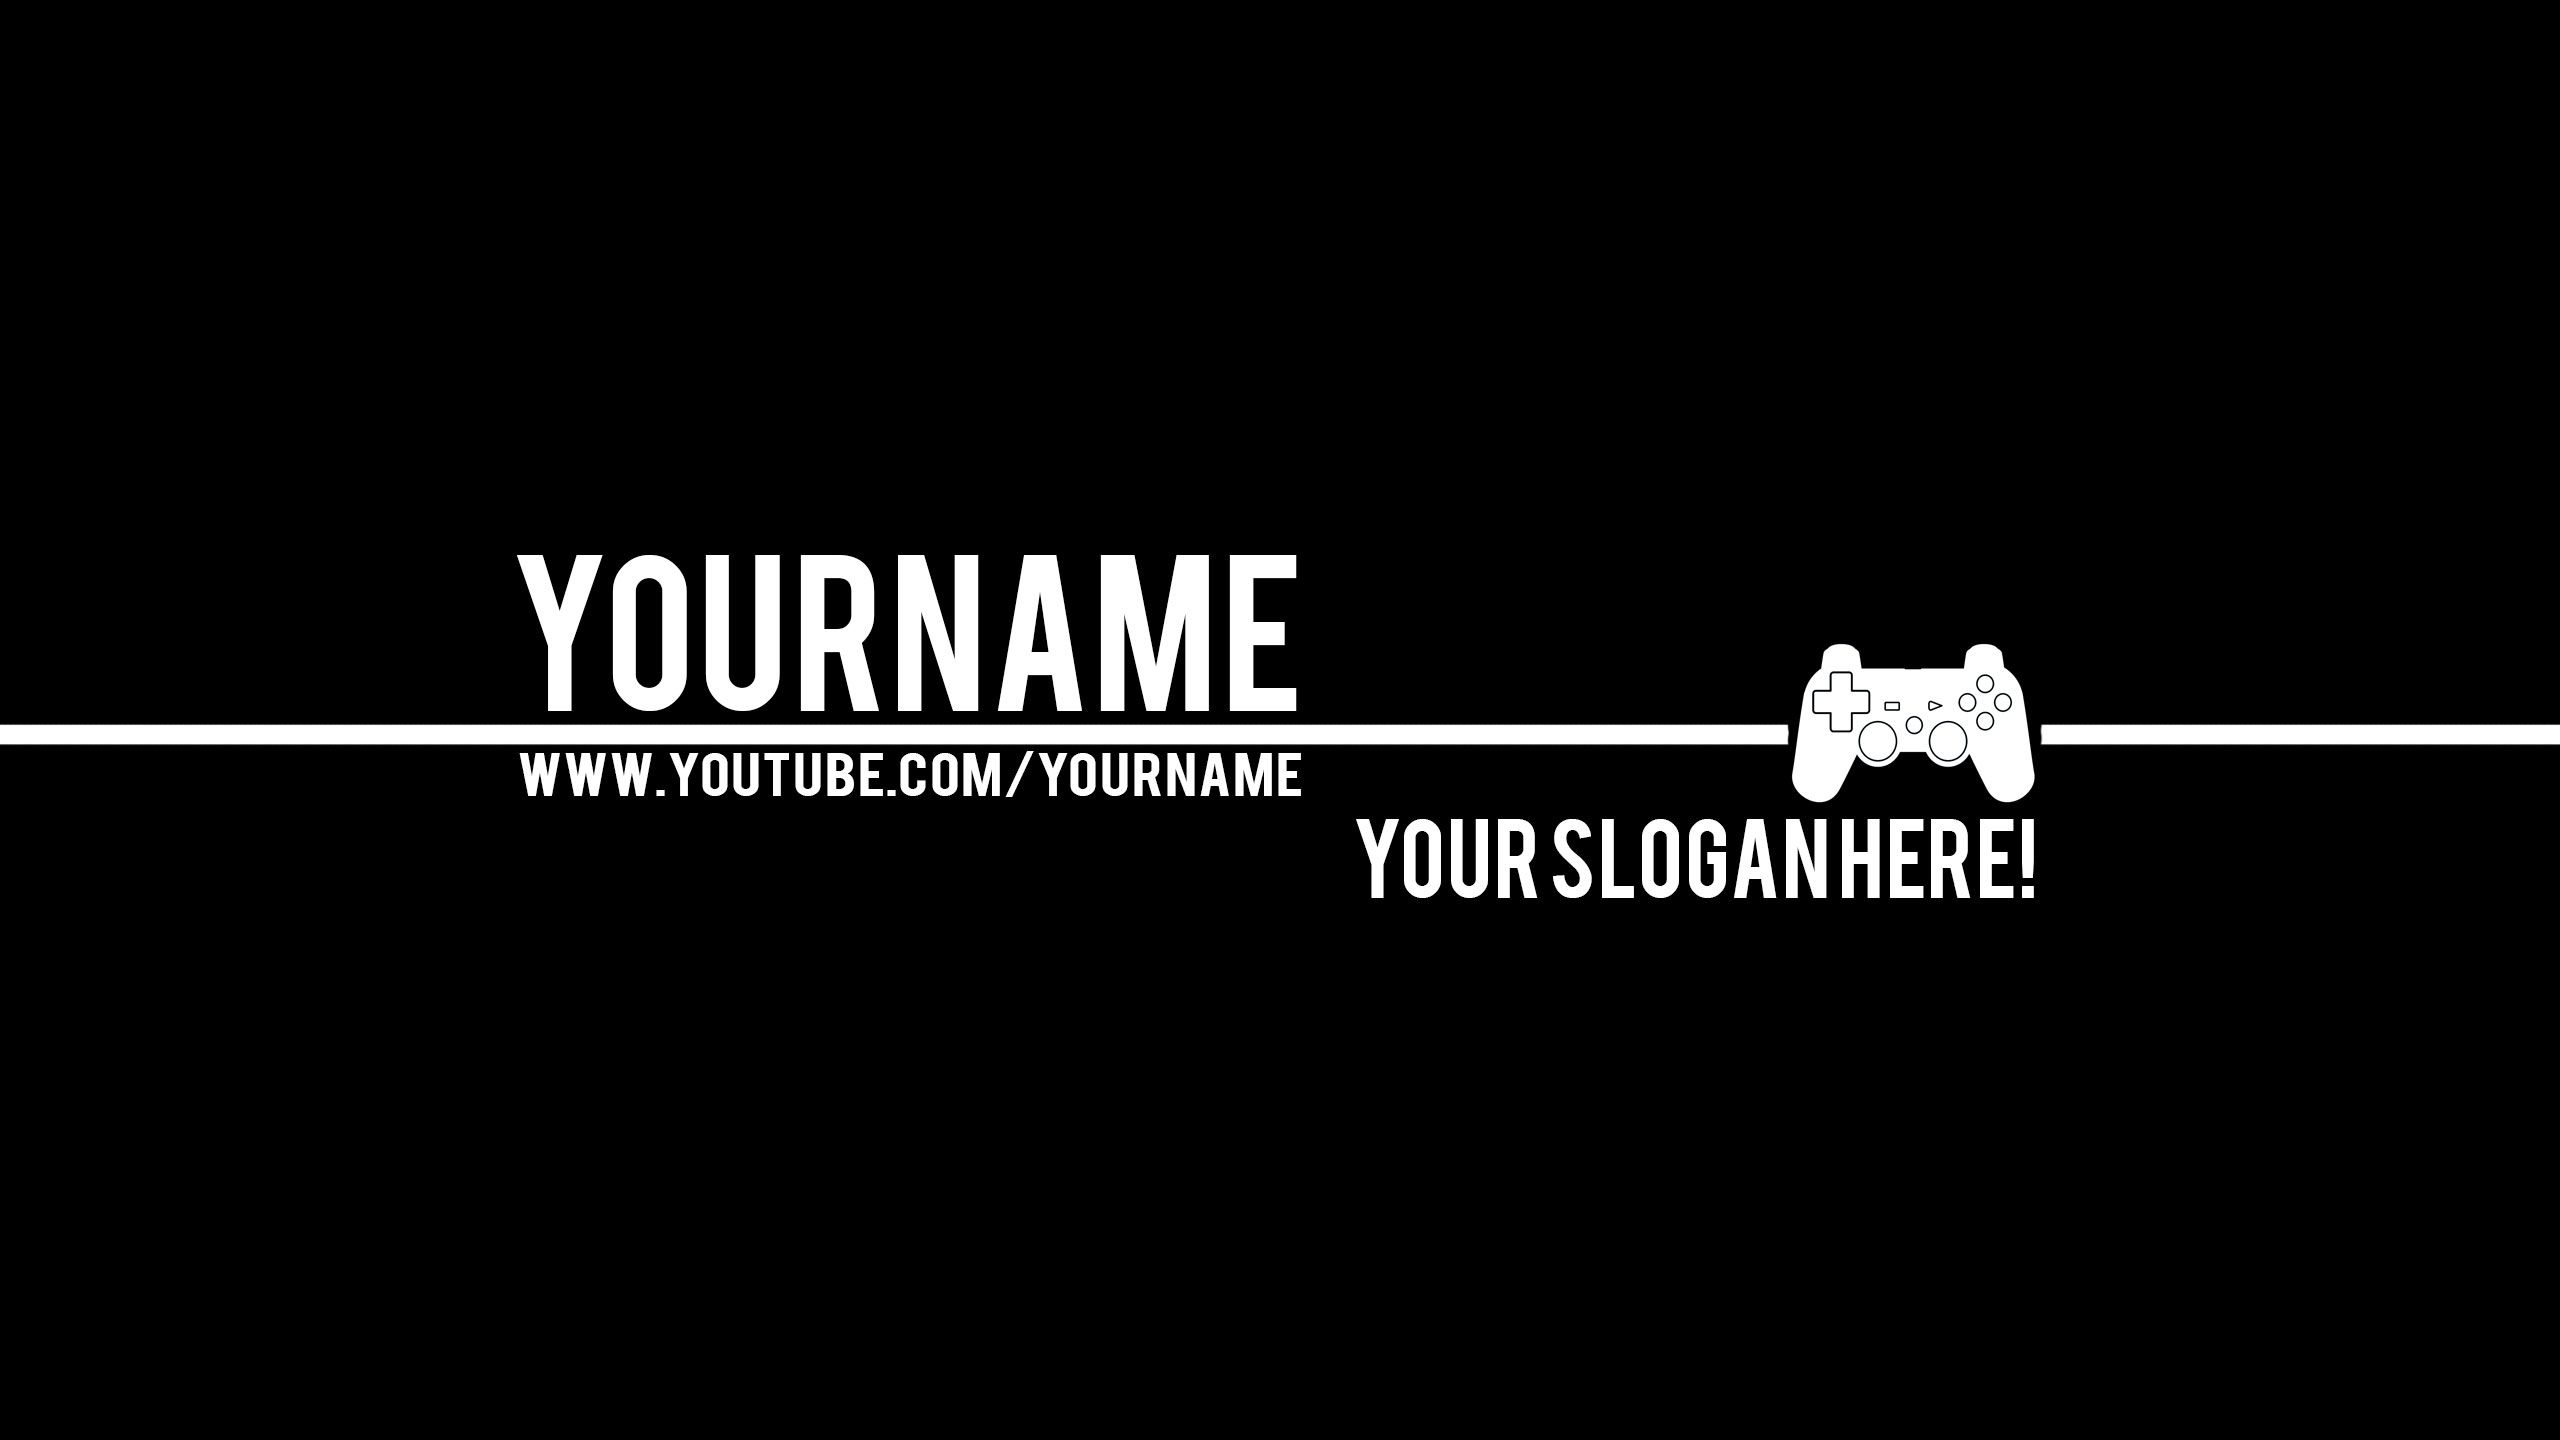 Mn6cgk Jpg 2560 1440 Youtube Banner Backgrounds Youtube Banners Youtube Banner Template